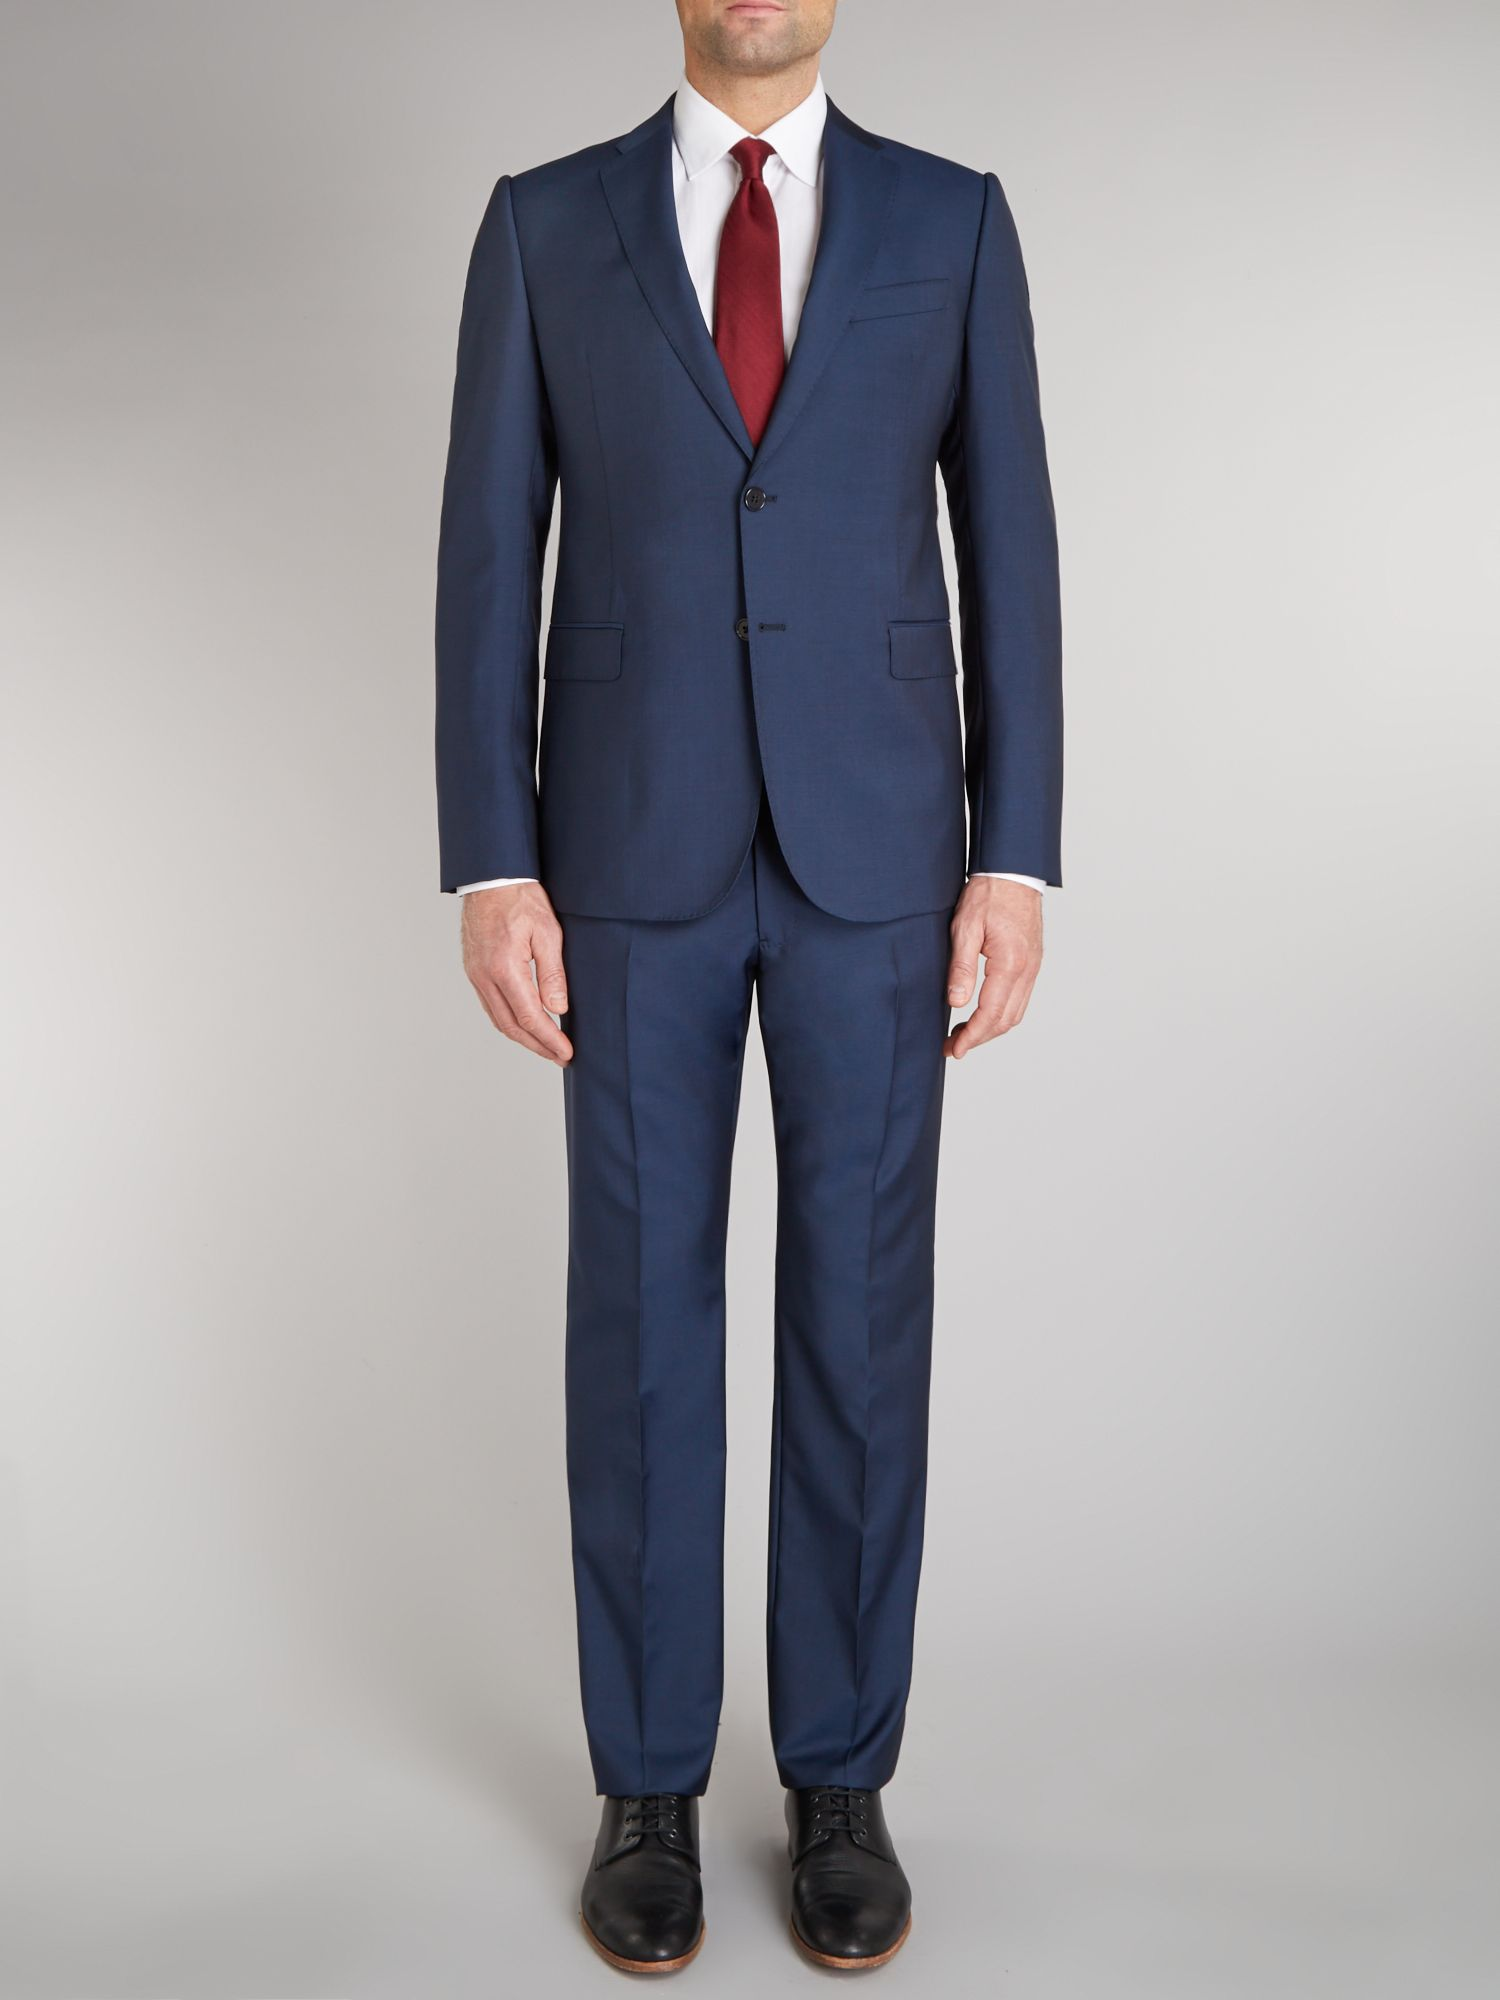 Metro mohair solid slim fit suit